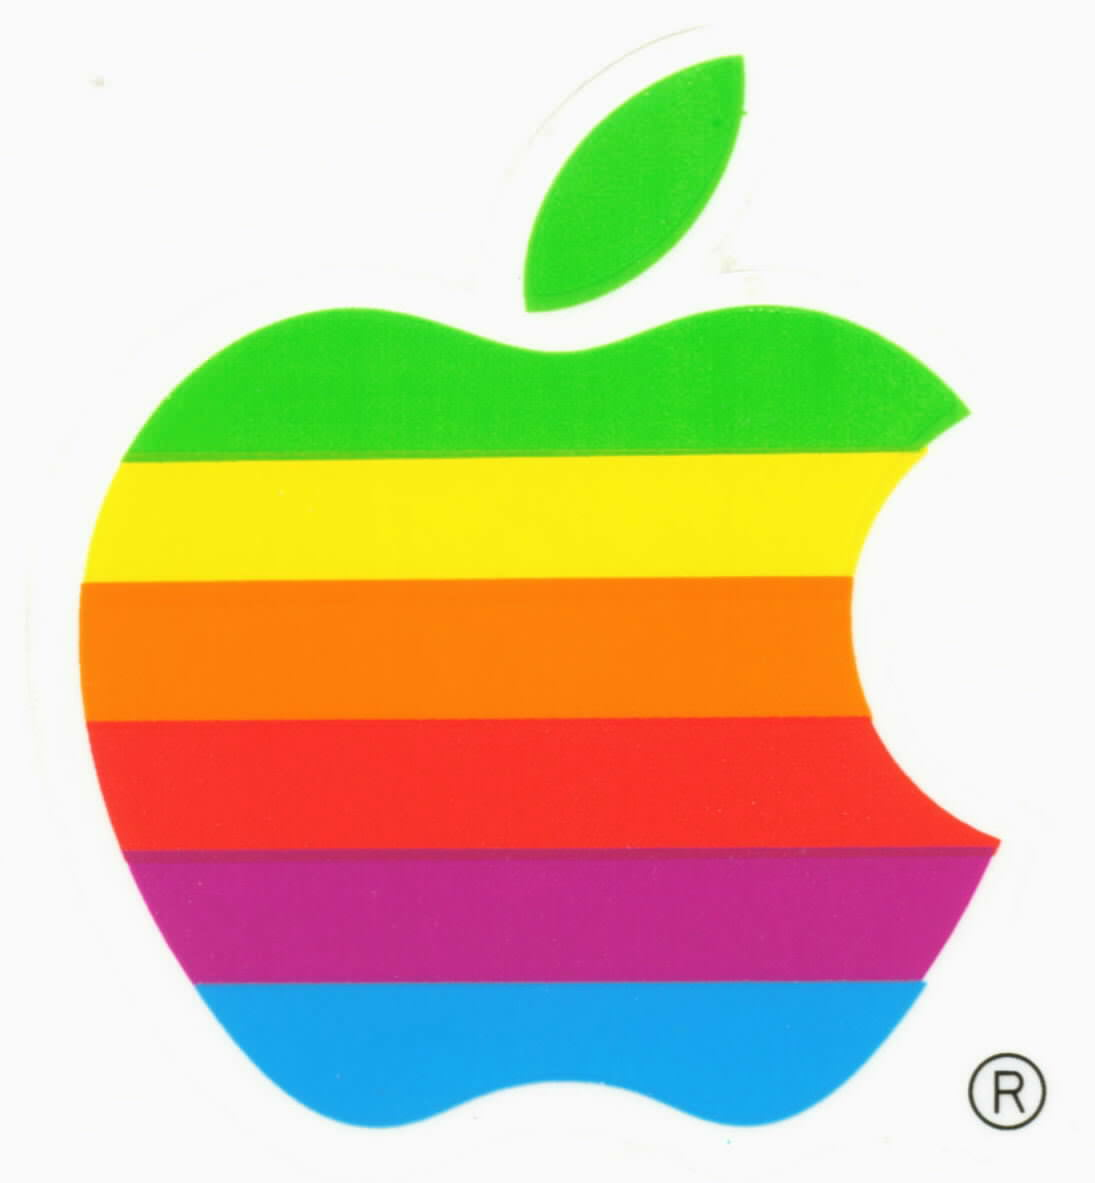 Retro Macintosh Apple Logo